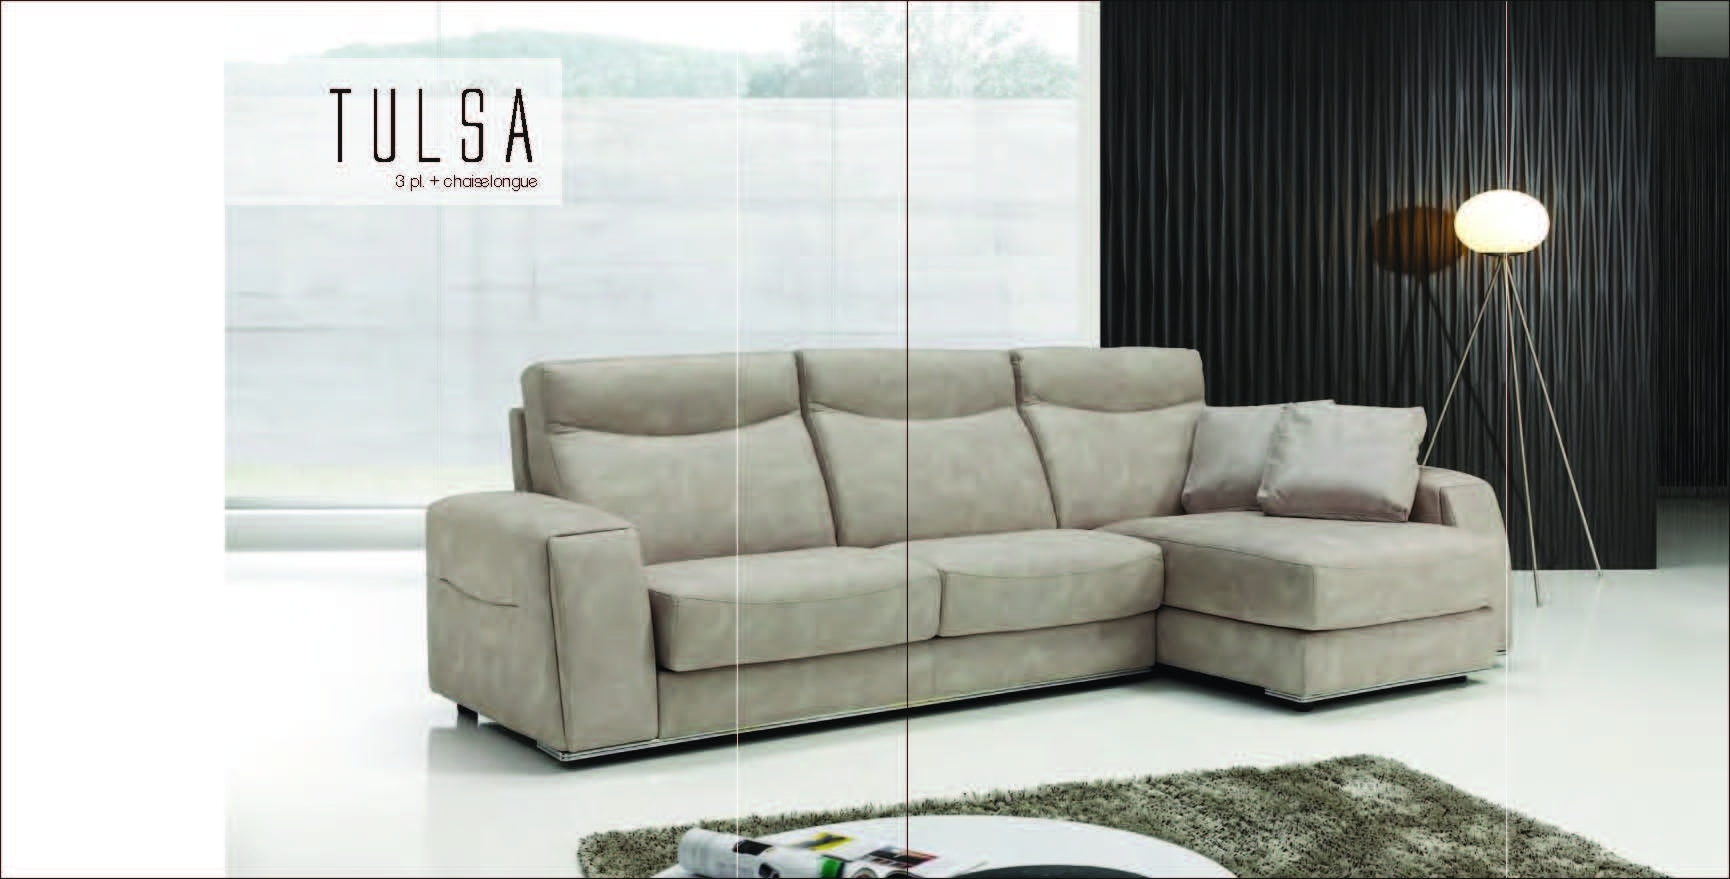 Tulsa, Vizcaino Modern Sectionals, Spain, Collections With Tulsa Sectional Sofas (Image 10 of 10)